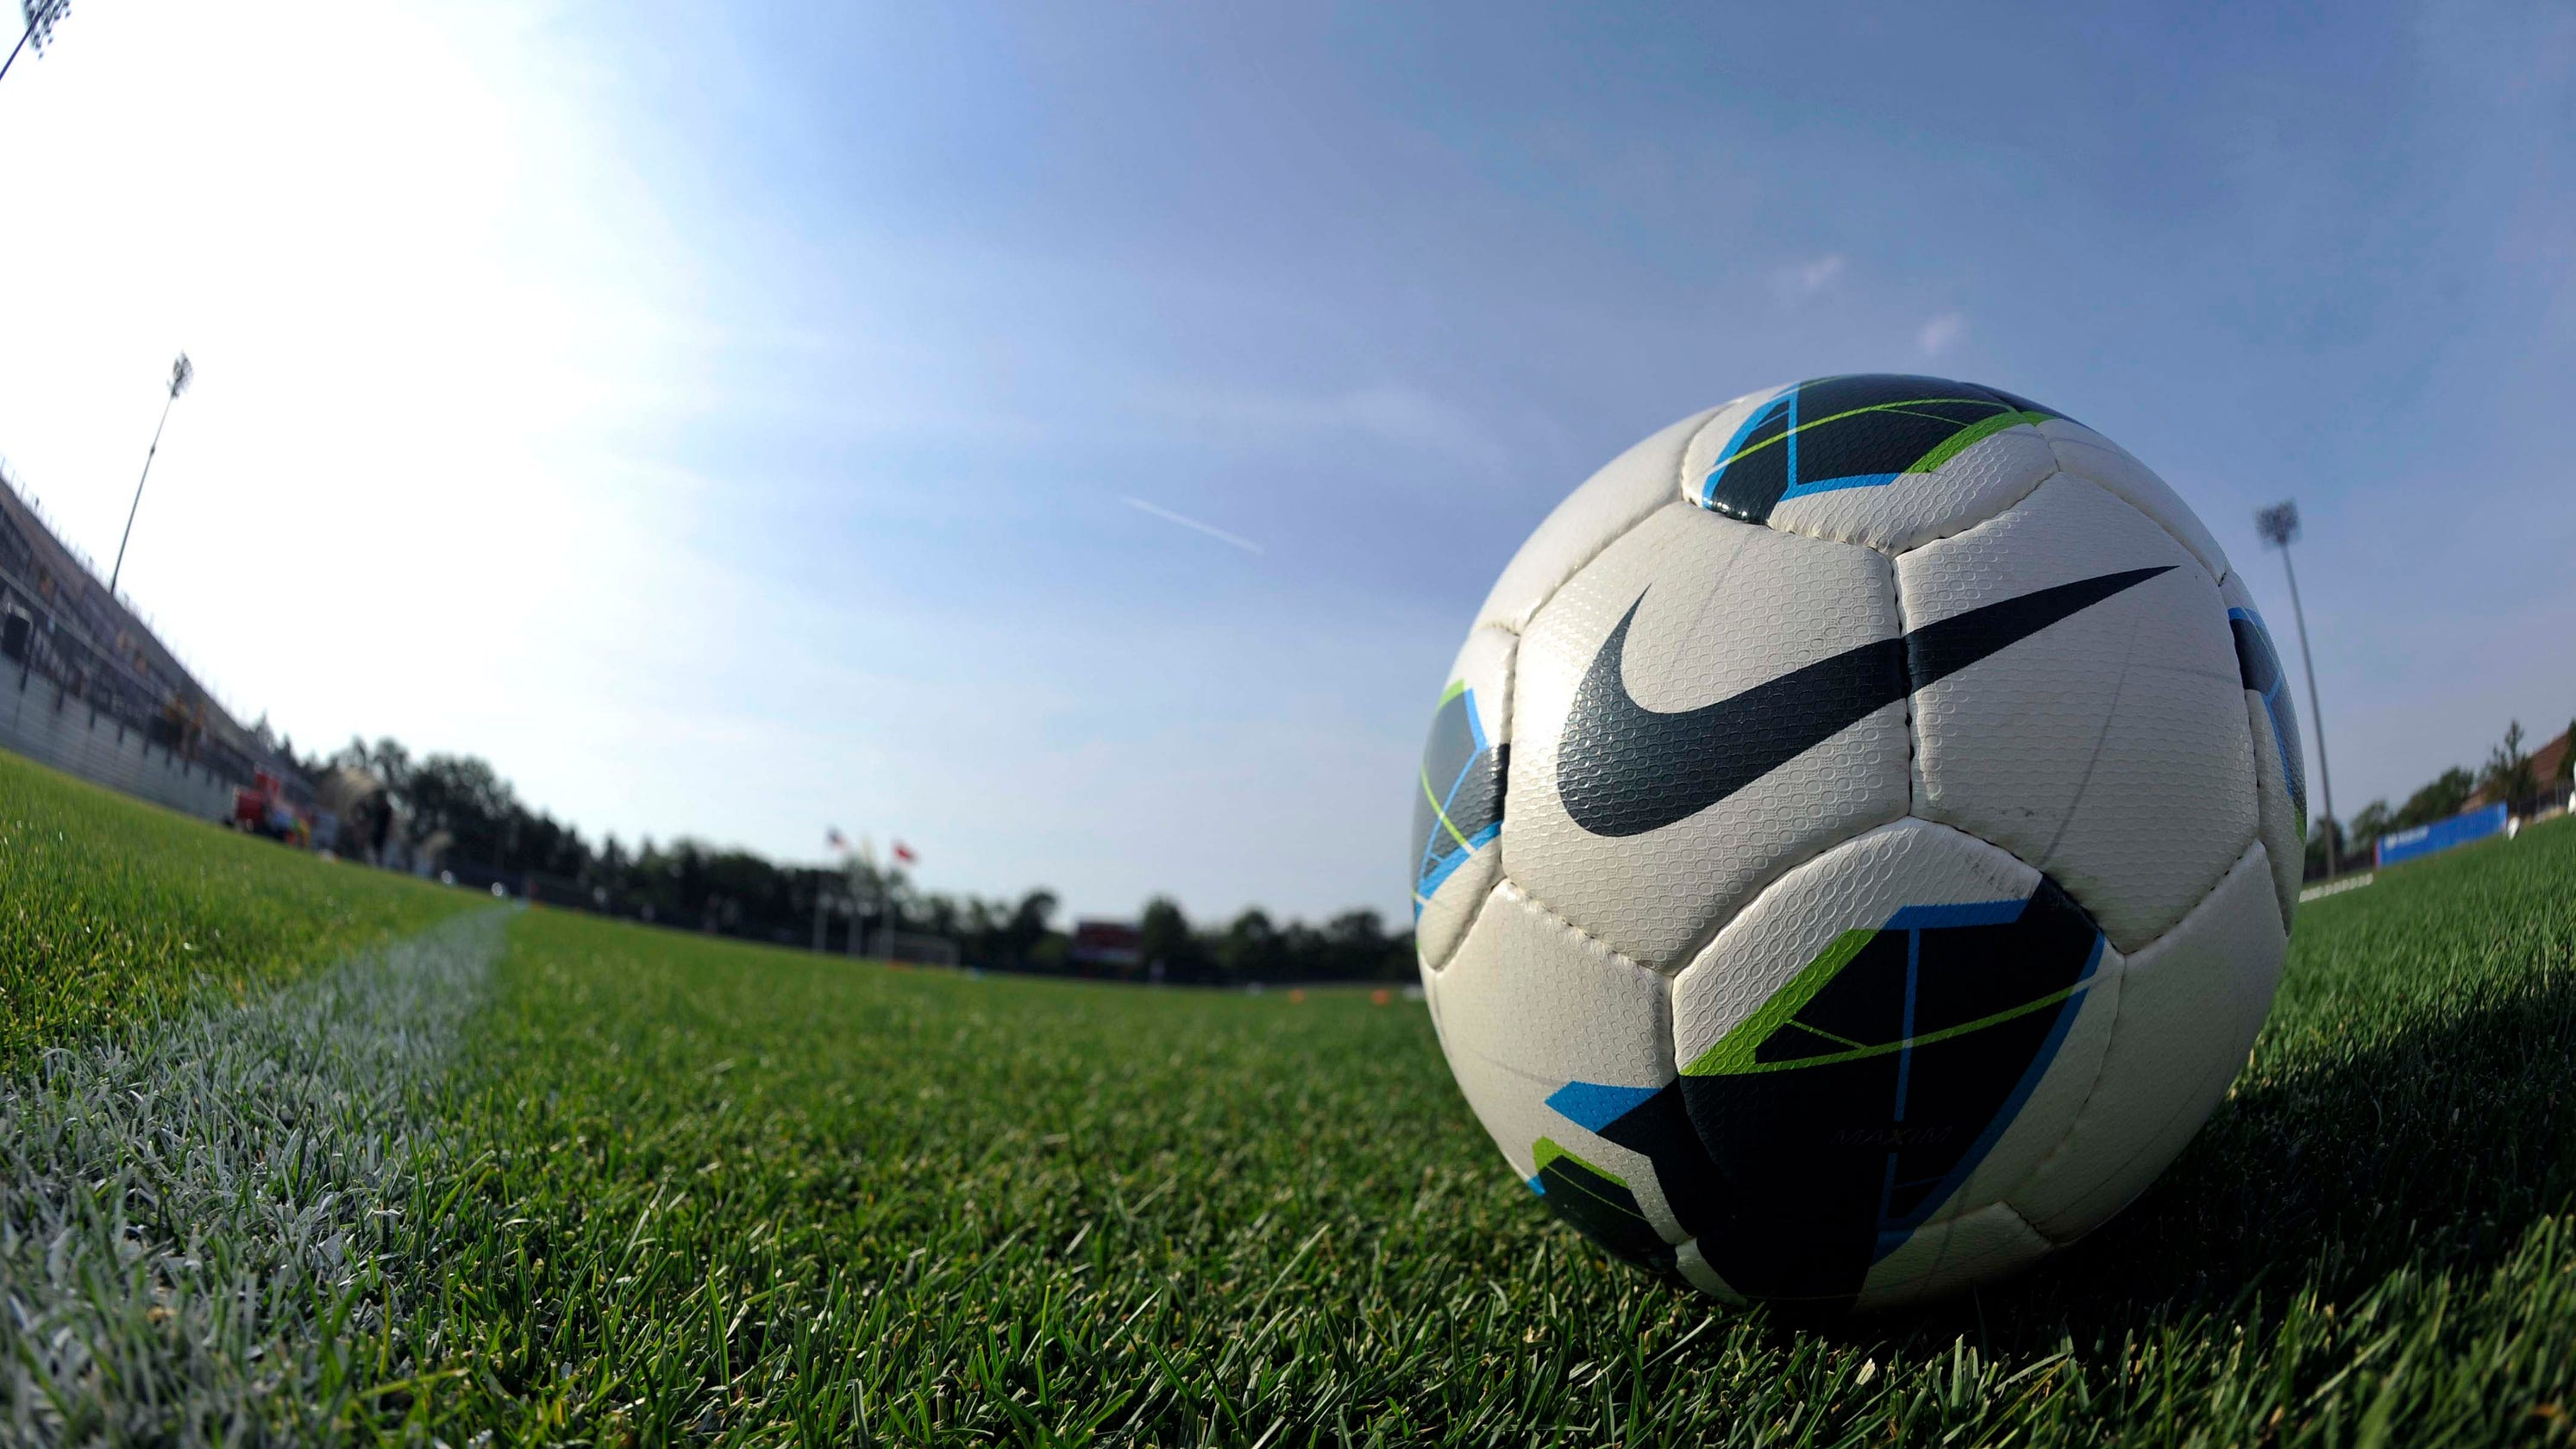 15-year-old soccer player sues NWSL over age restrictions